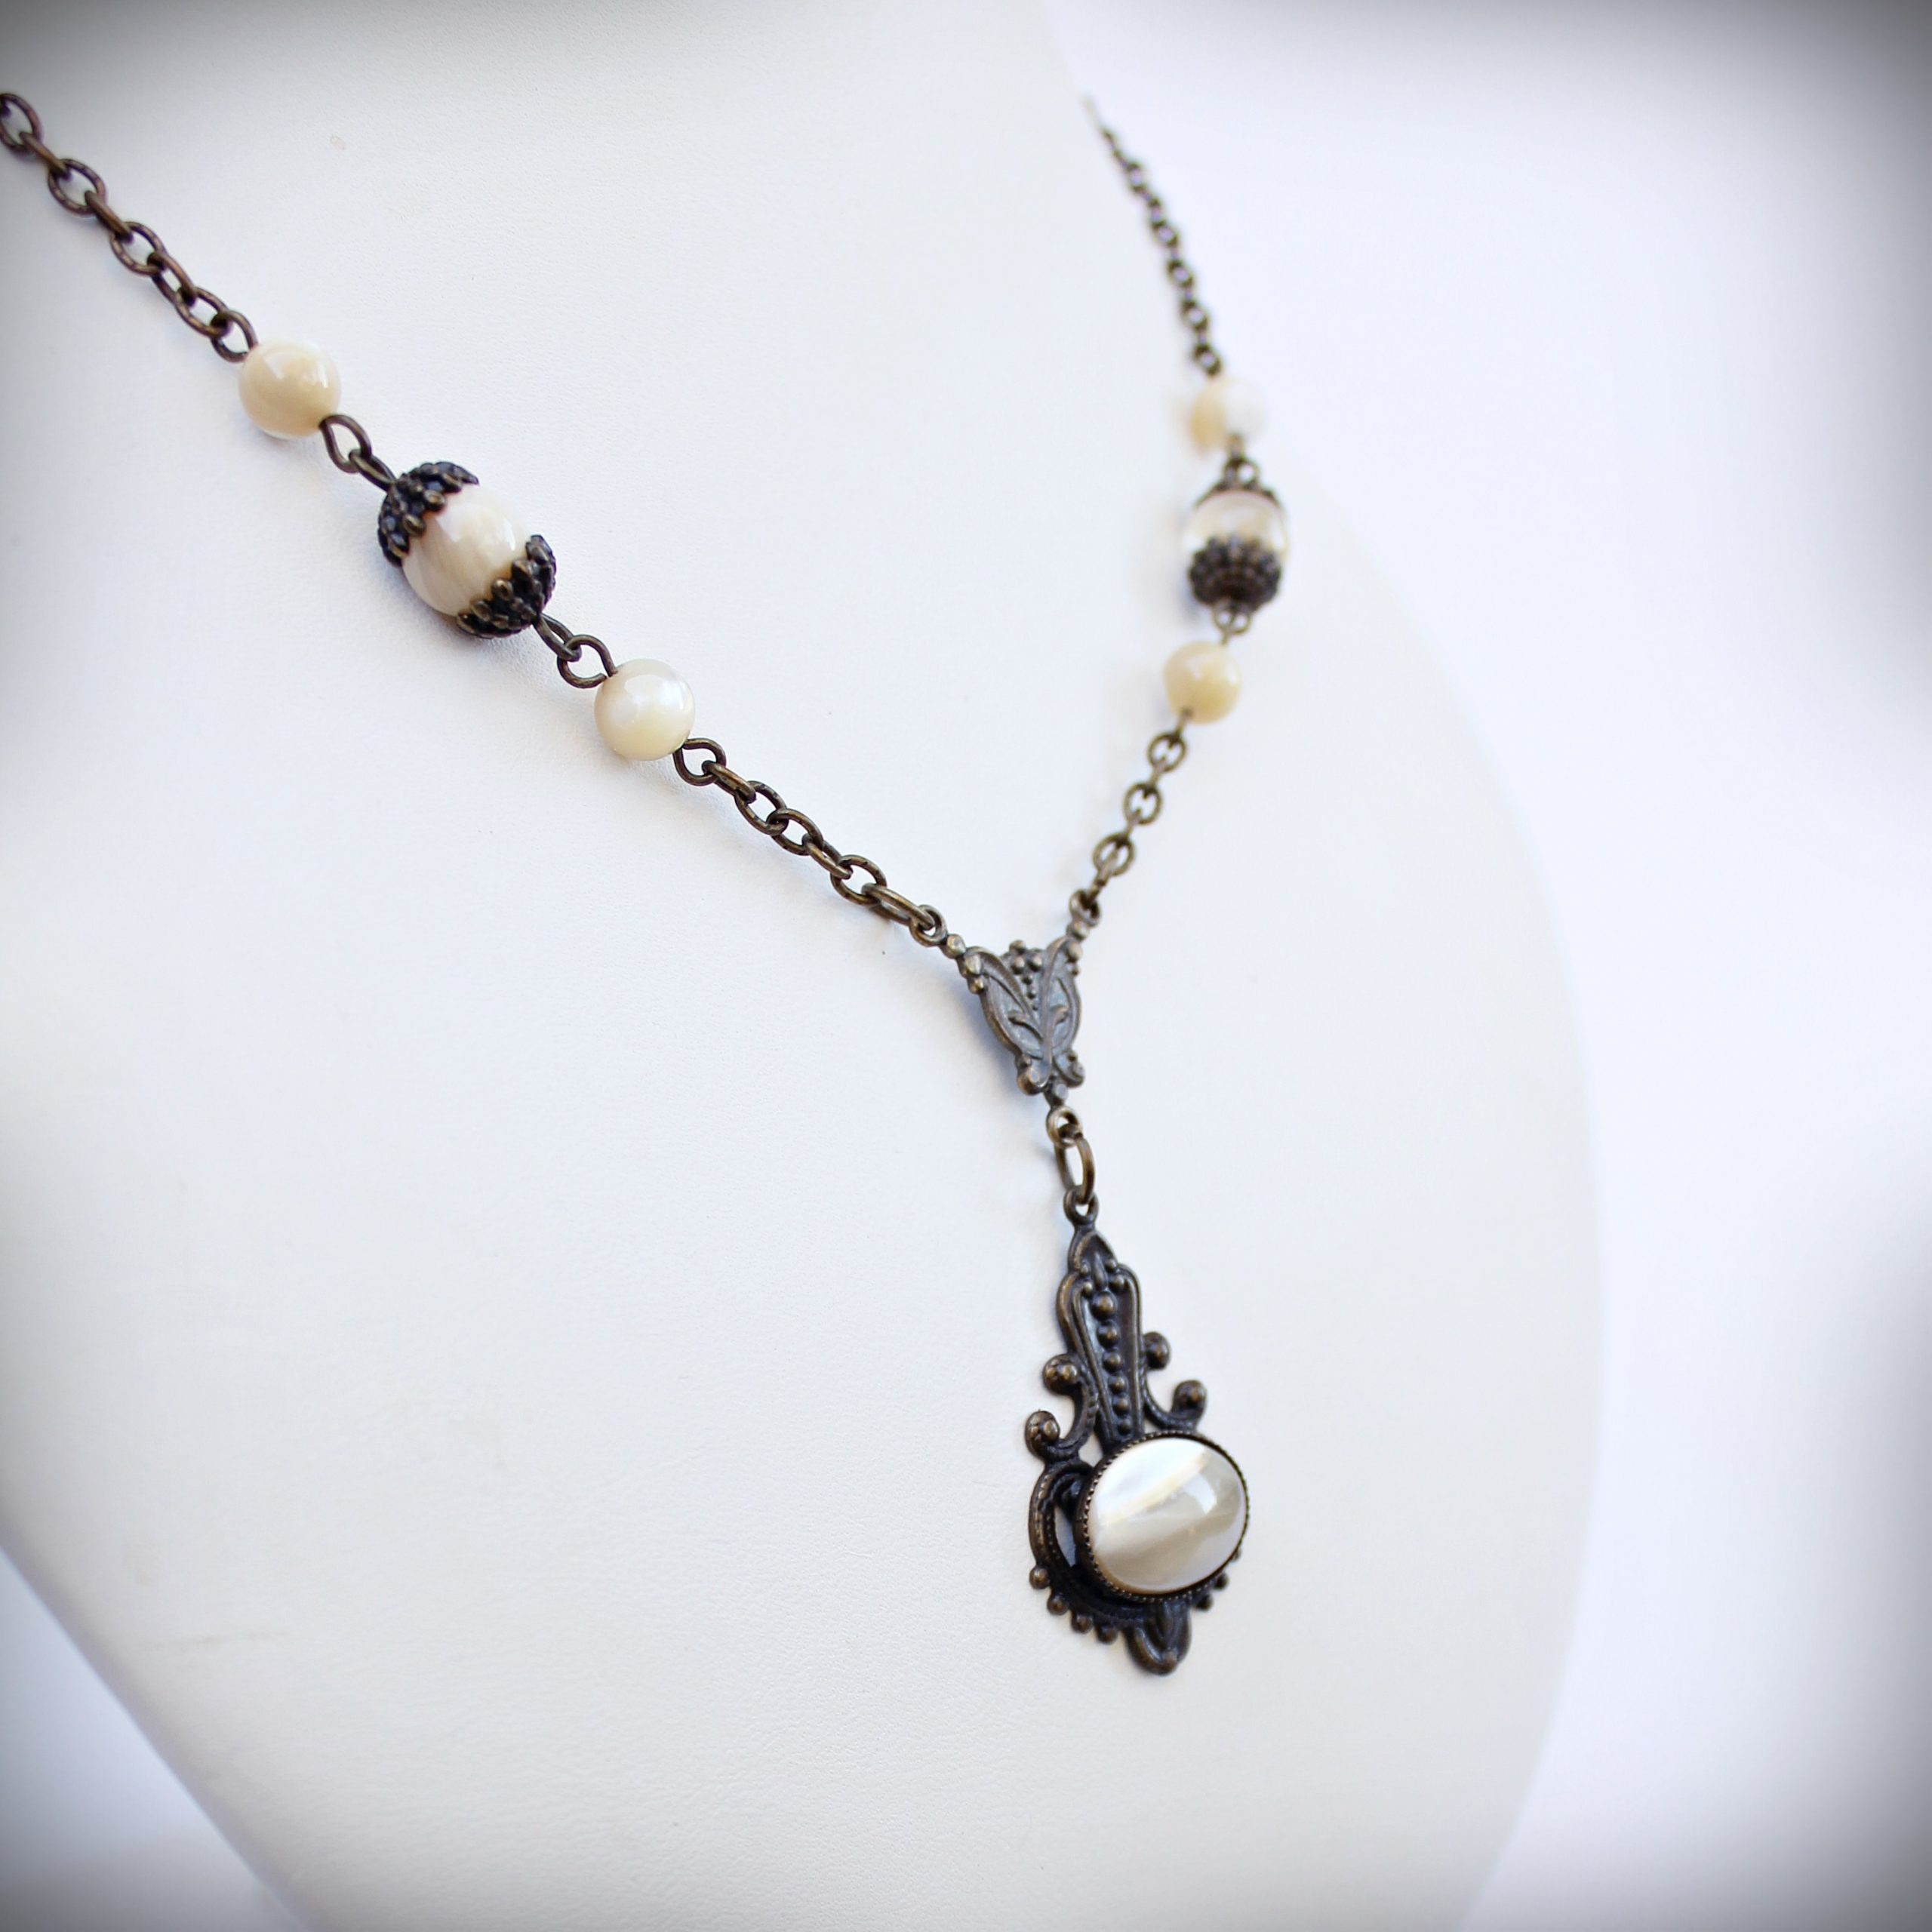 Caramel Mother of Pearl Necklace in Vintage Style